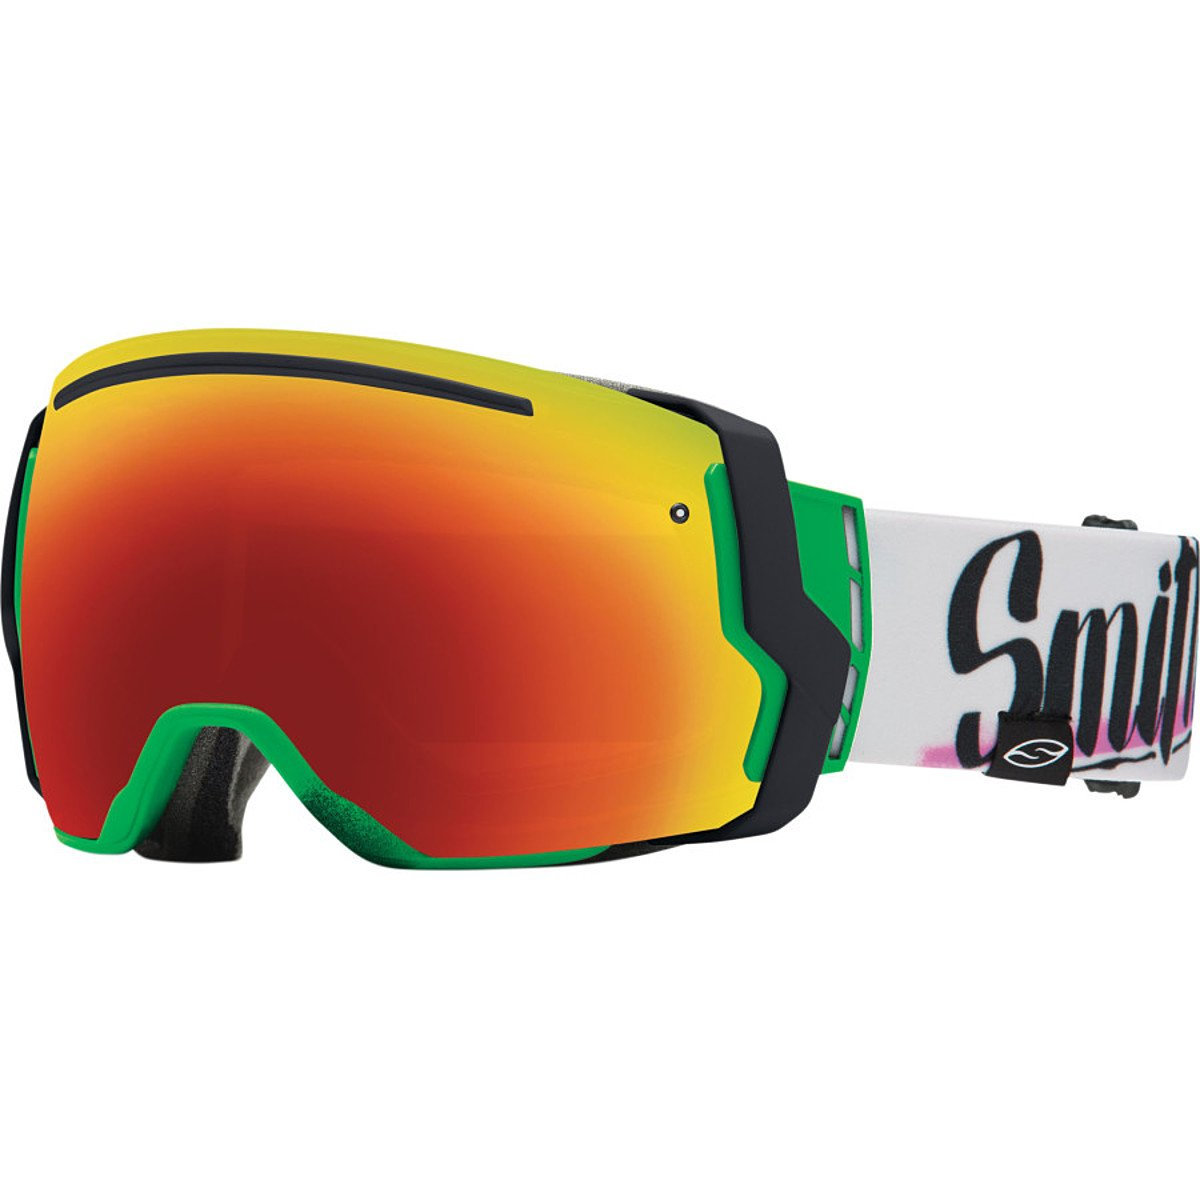 Smith Optics I/O7 Vaporator Series Snocross Snowmobile Goggles Eyewear - Neon Baron Von Fancy/Red SOL-X/Blue Sensor / Medium